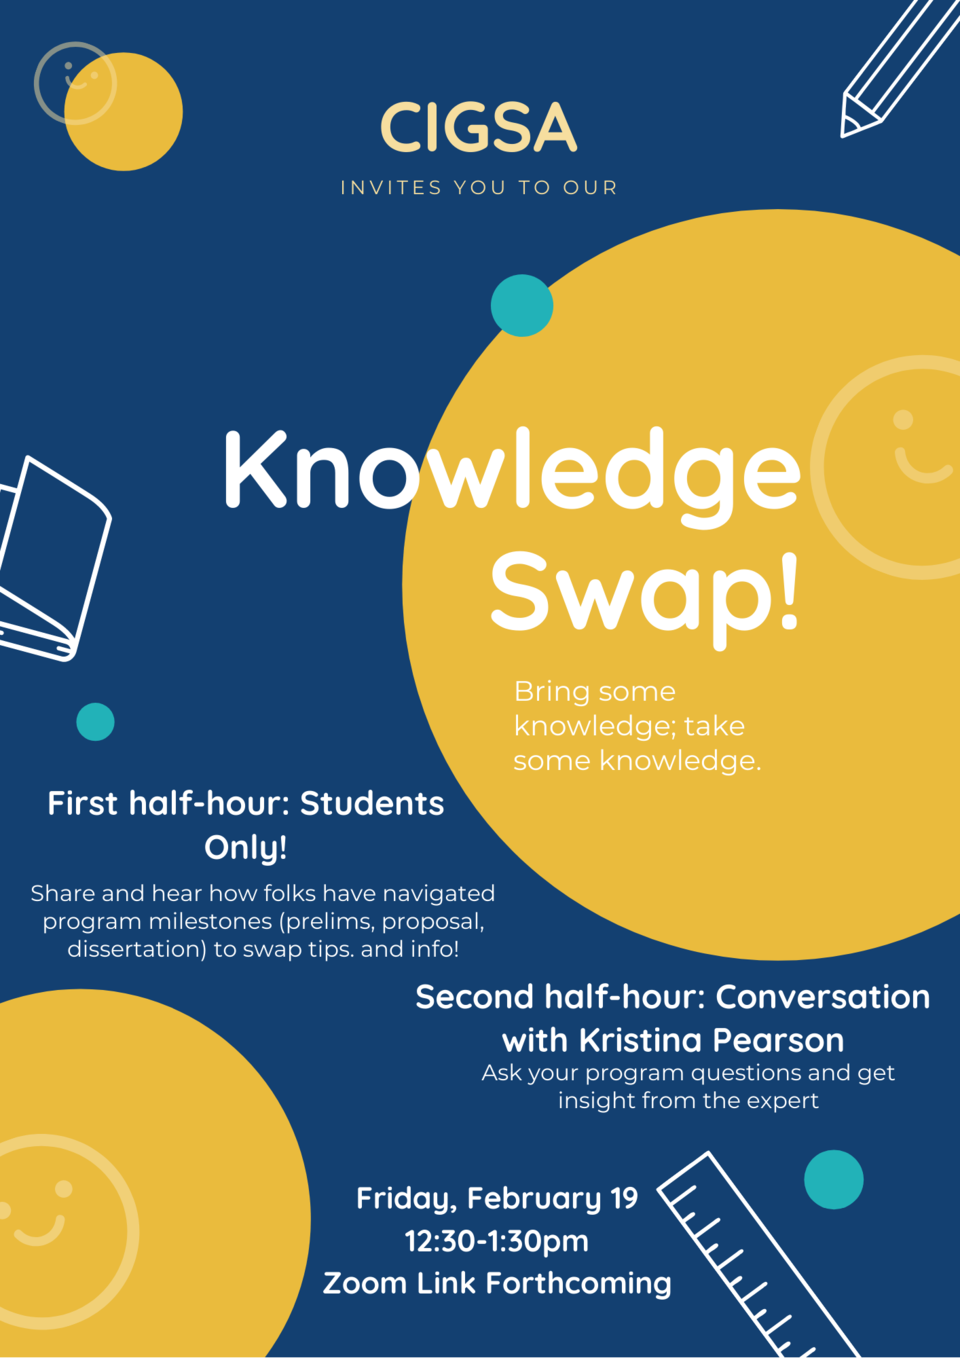 CIGSA Invites you to our Knowledge Swap! Take knowledge; give knowledge. 1st Half Hour: students only how folks have navigated program milestones (prelims, proposal, dissertation) to get tips!  2nd half hour: Conversation w/ Kristina Pearson!